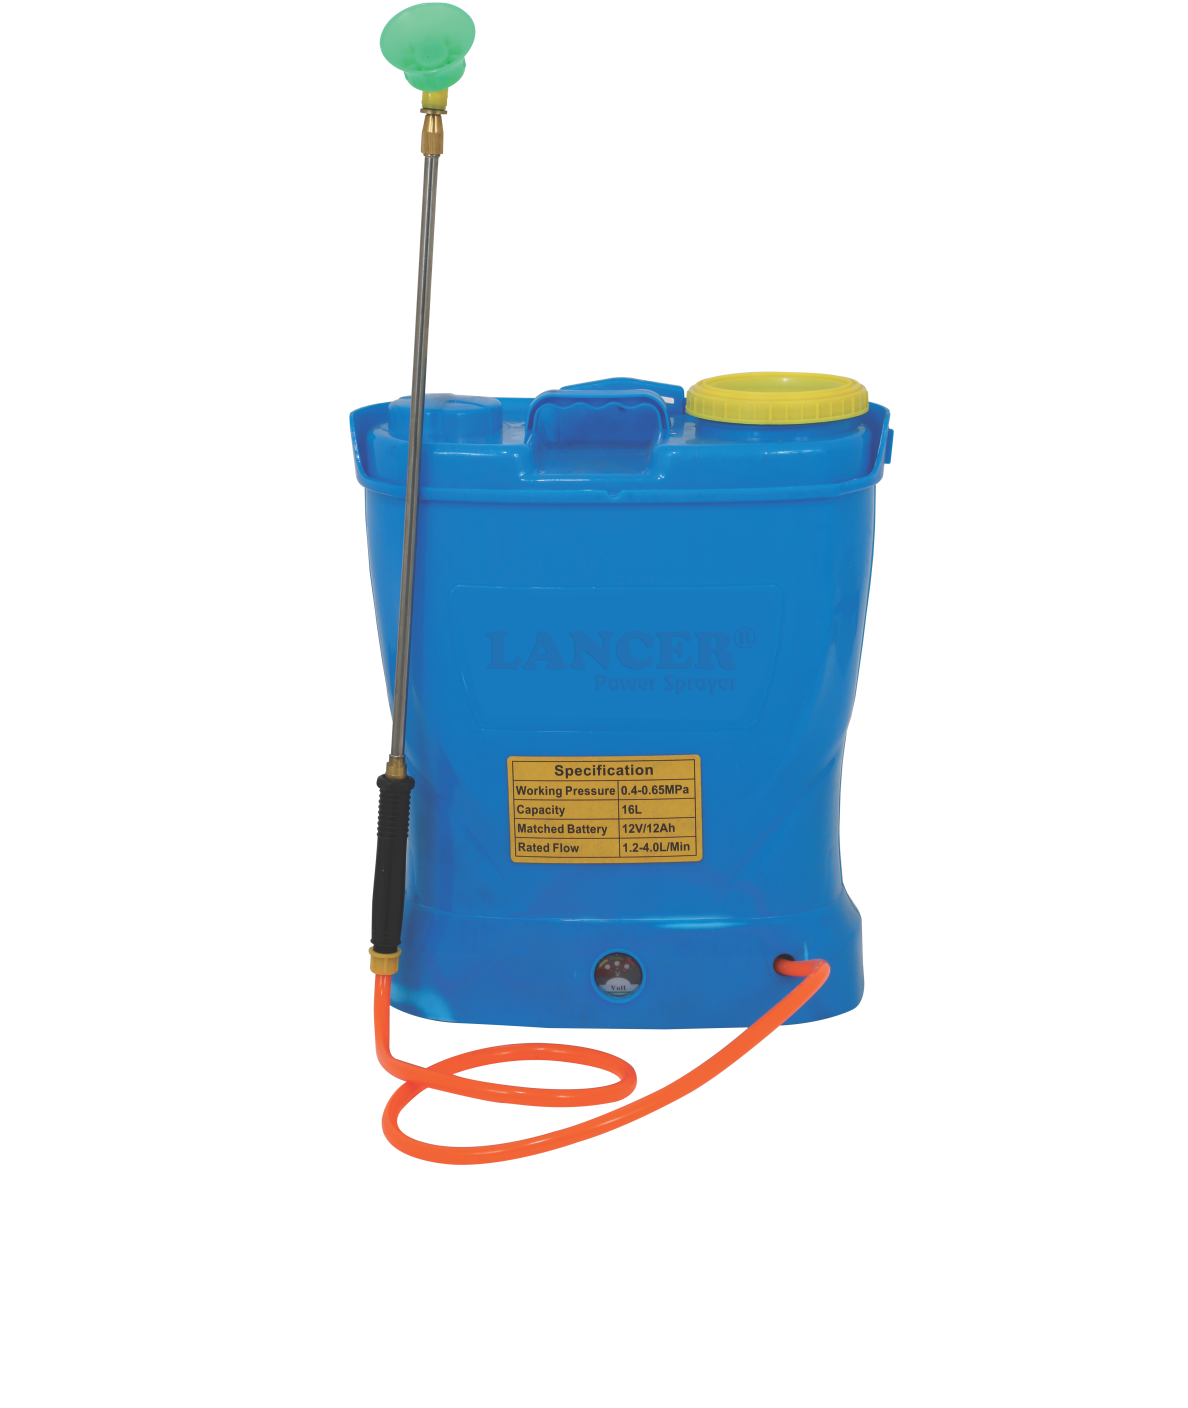 Knapsack Battery Sprayer Lancer LX-KB16-2